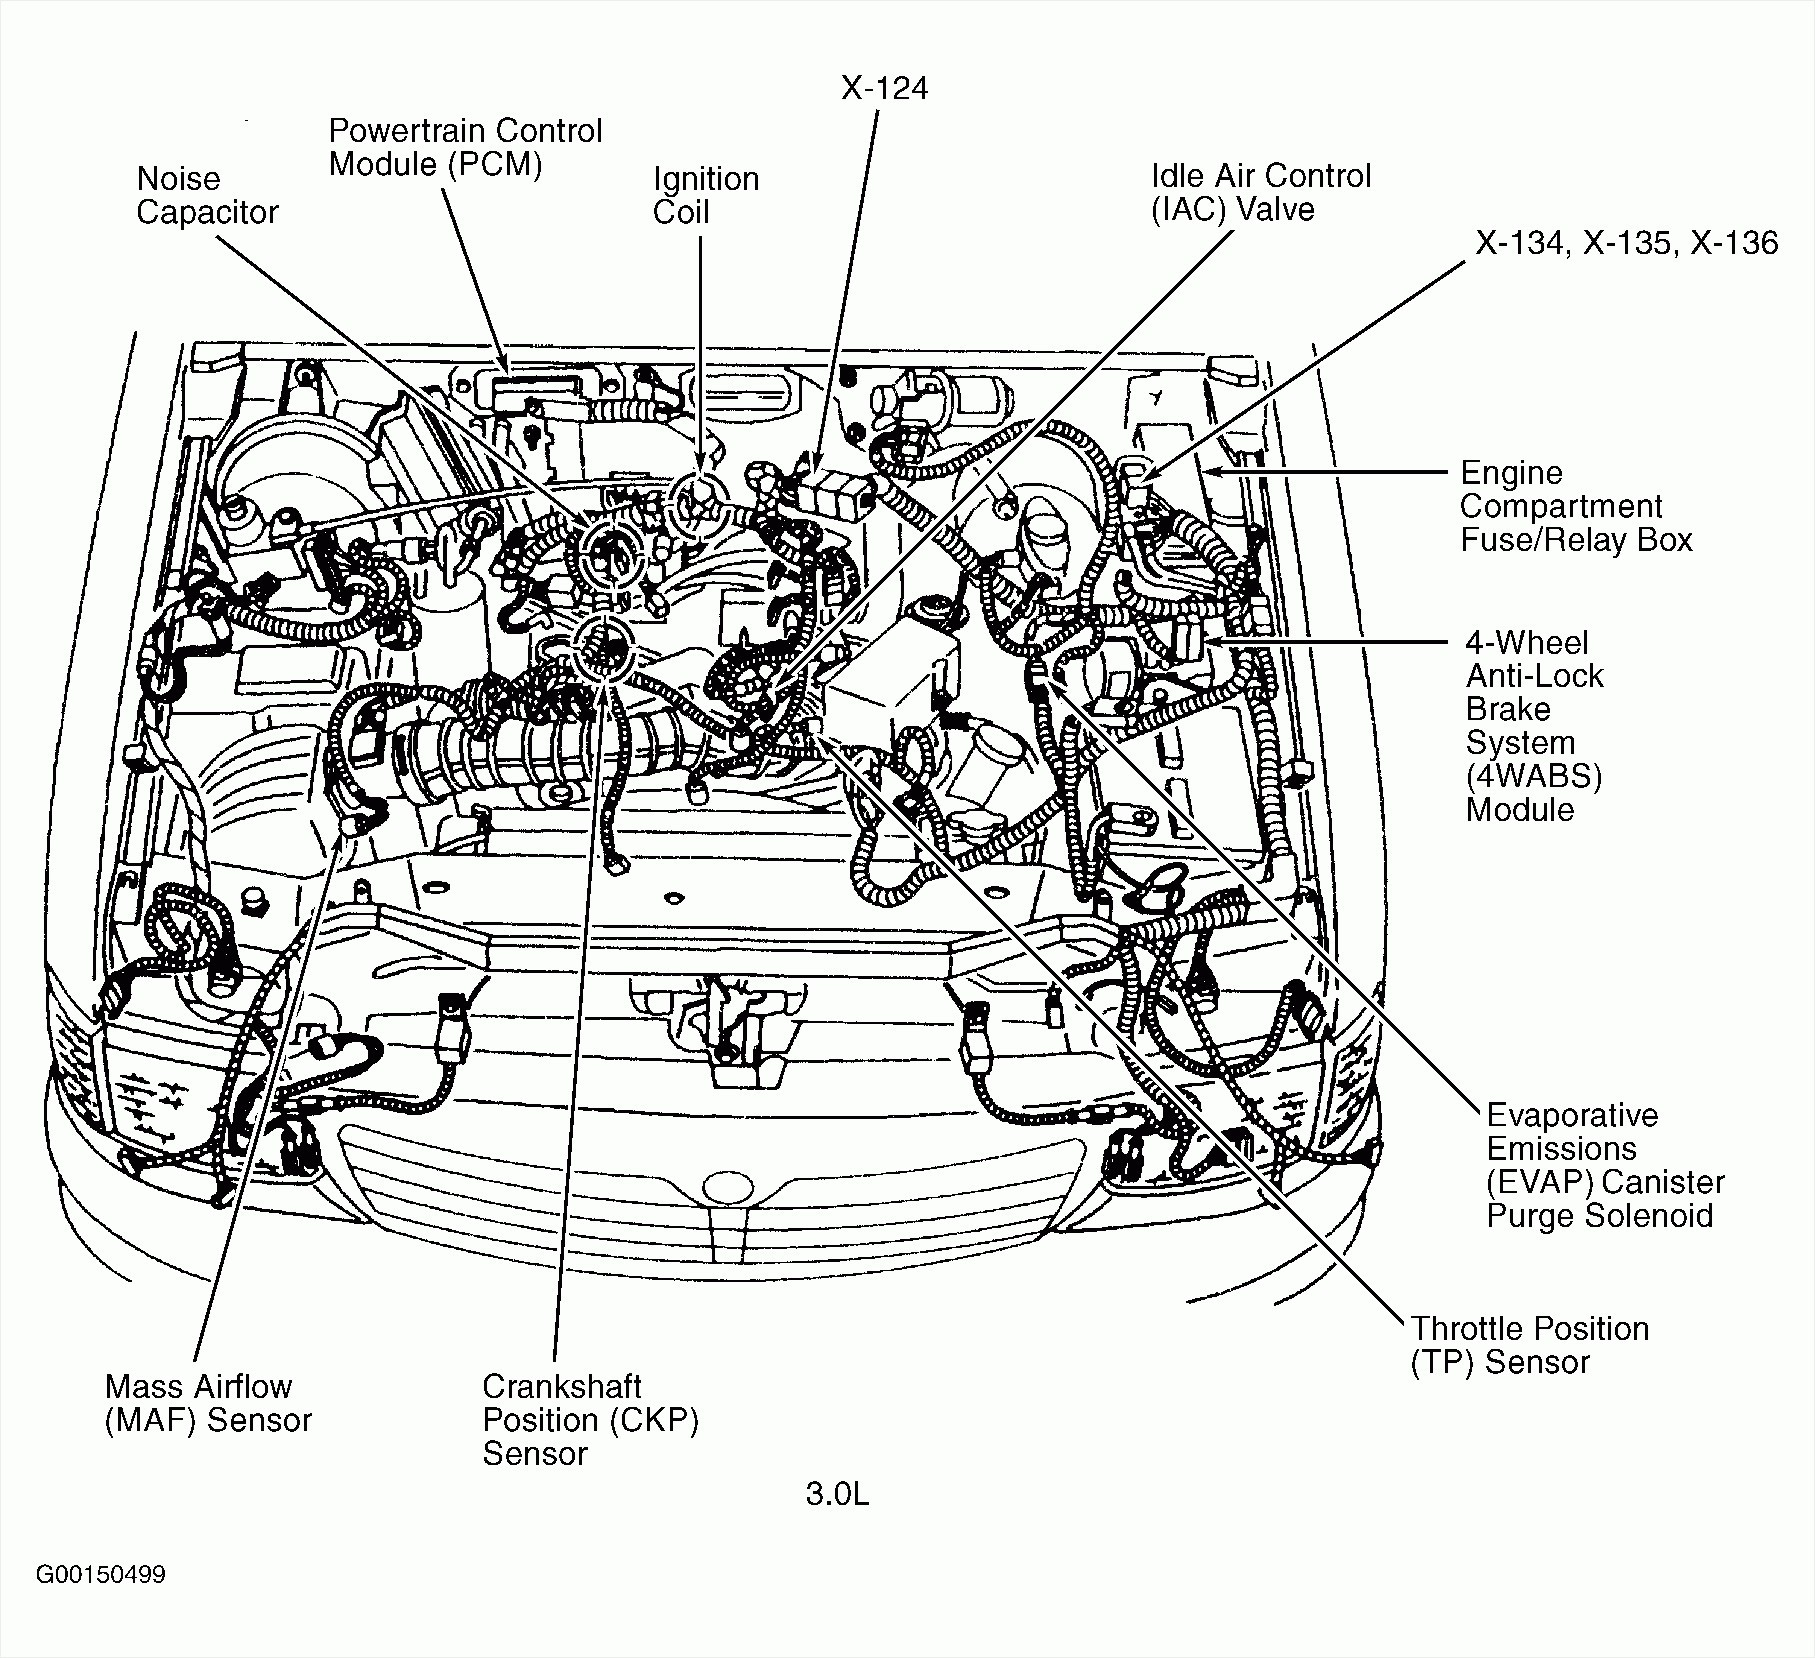 hight resolution of chrysler 300m engine diagram wiring diagram third level rh 18 3 12 jacobwinterstein com chrysler 300